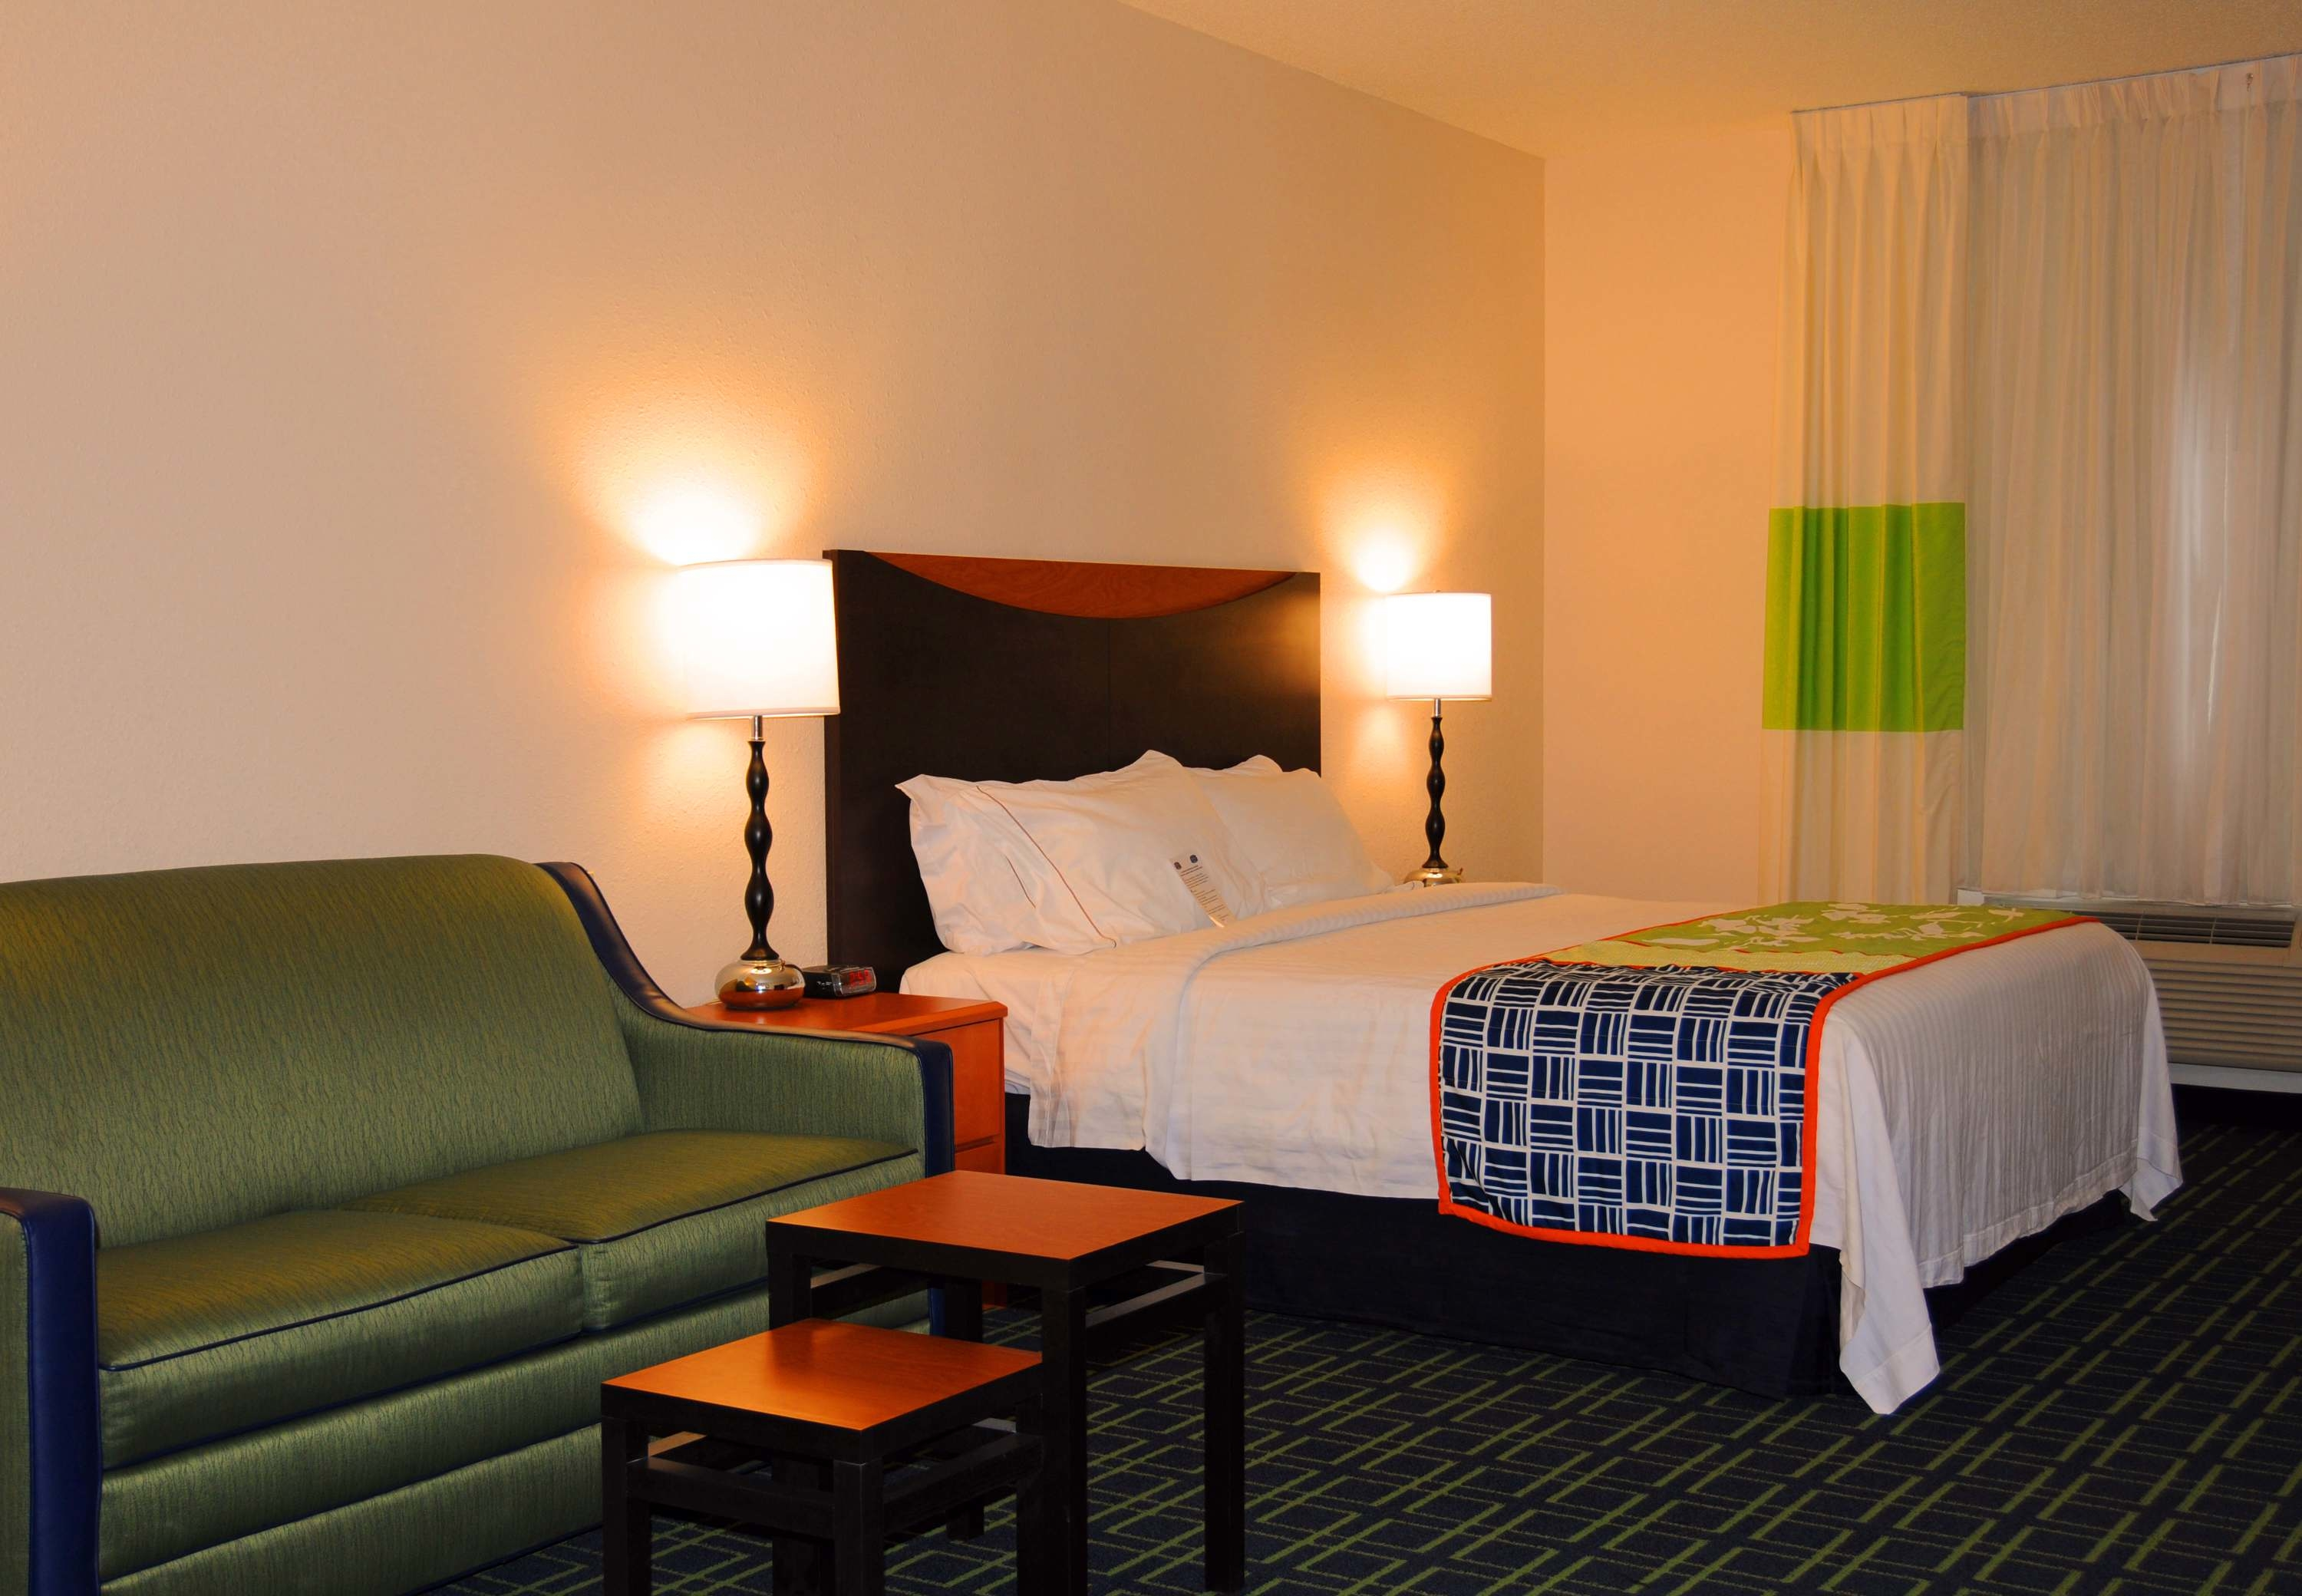 Fairfield Inn & Suites by Marriott Spearfish image 5